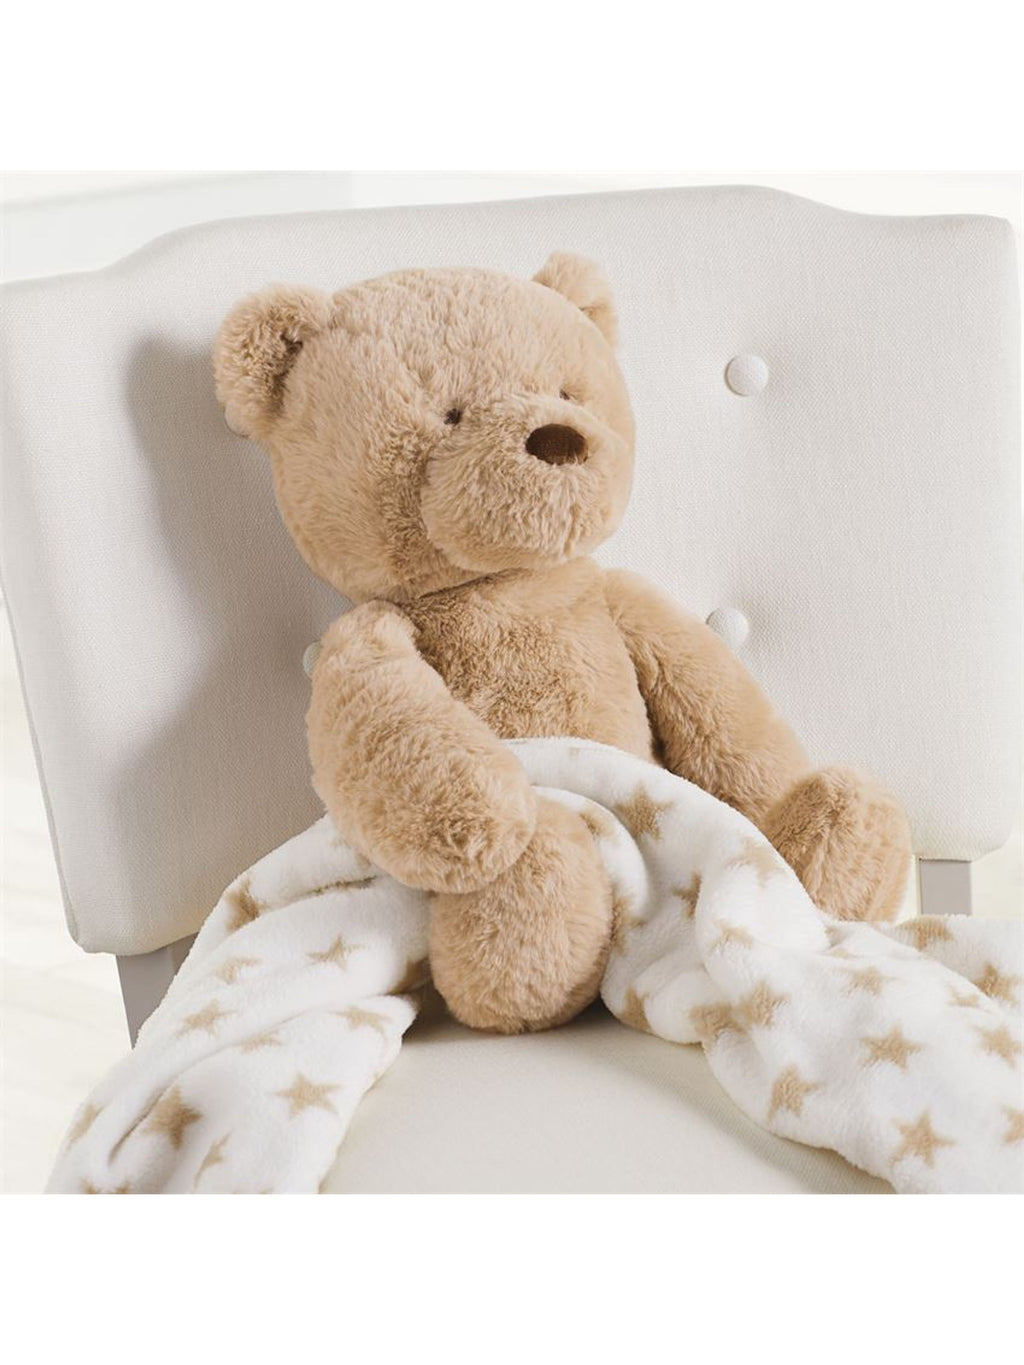 Bear Plush Blanket Pal